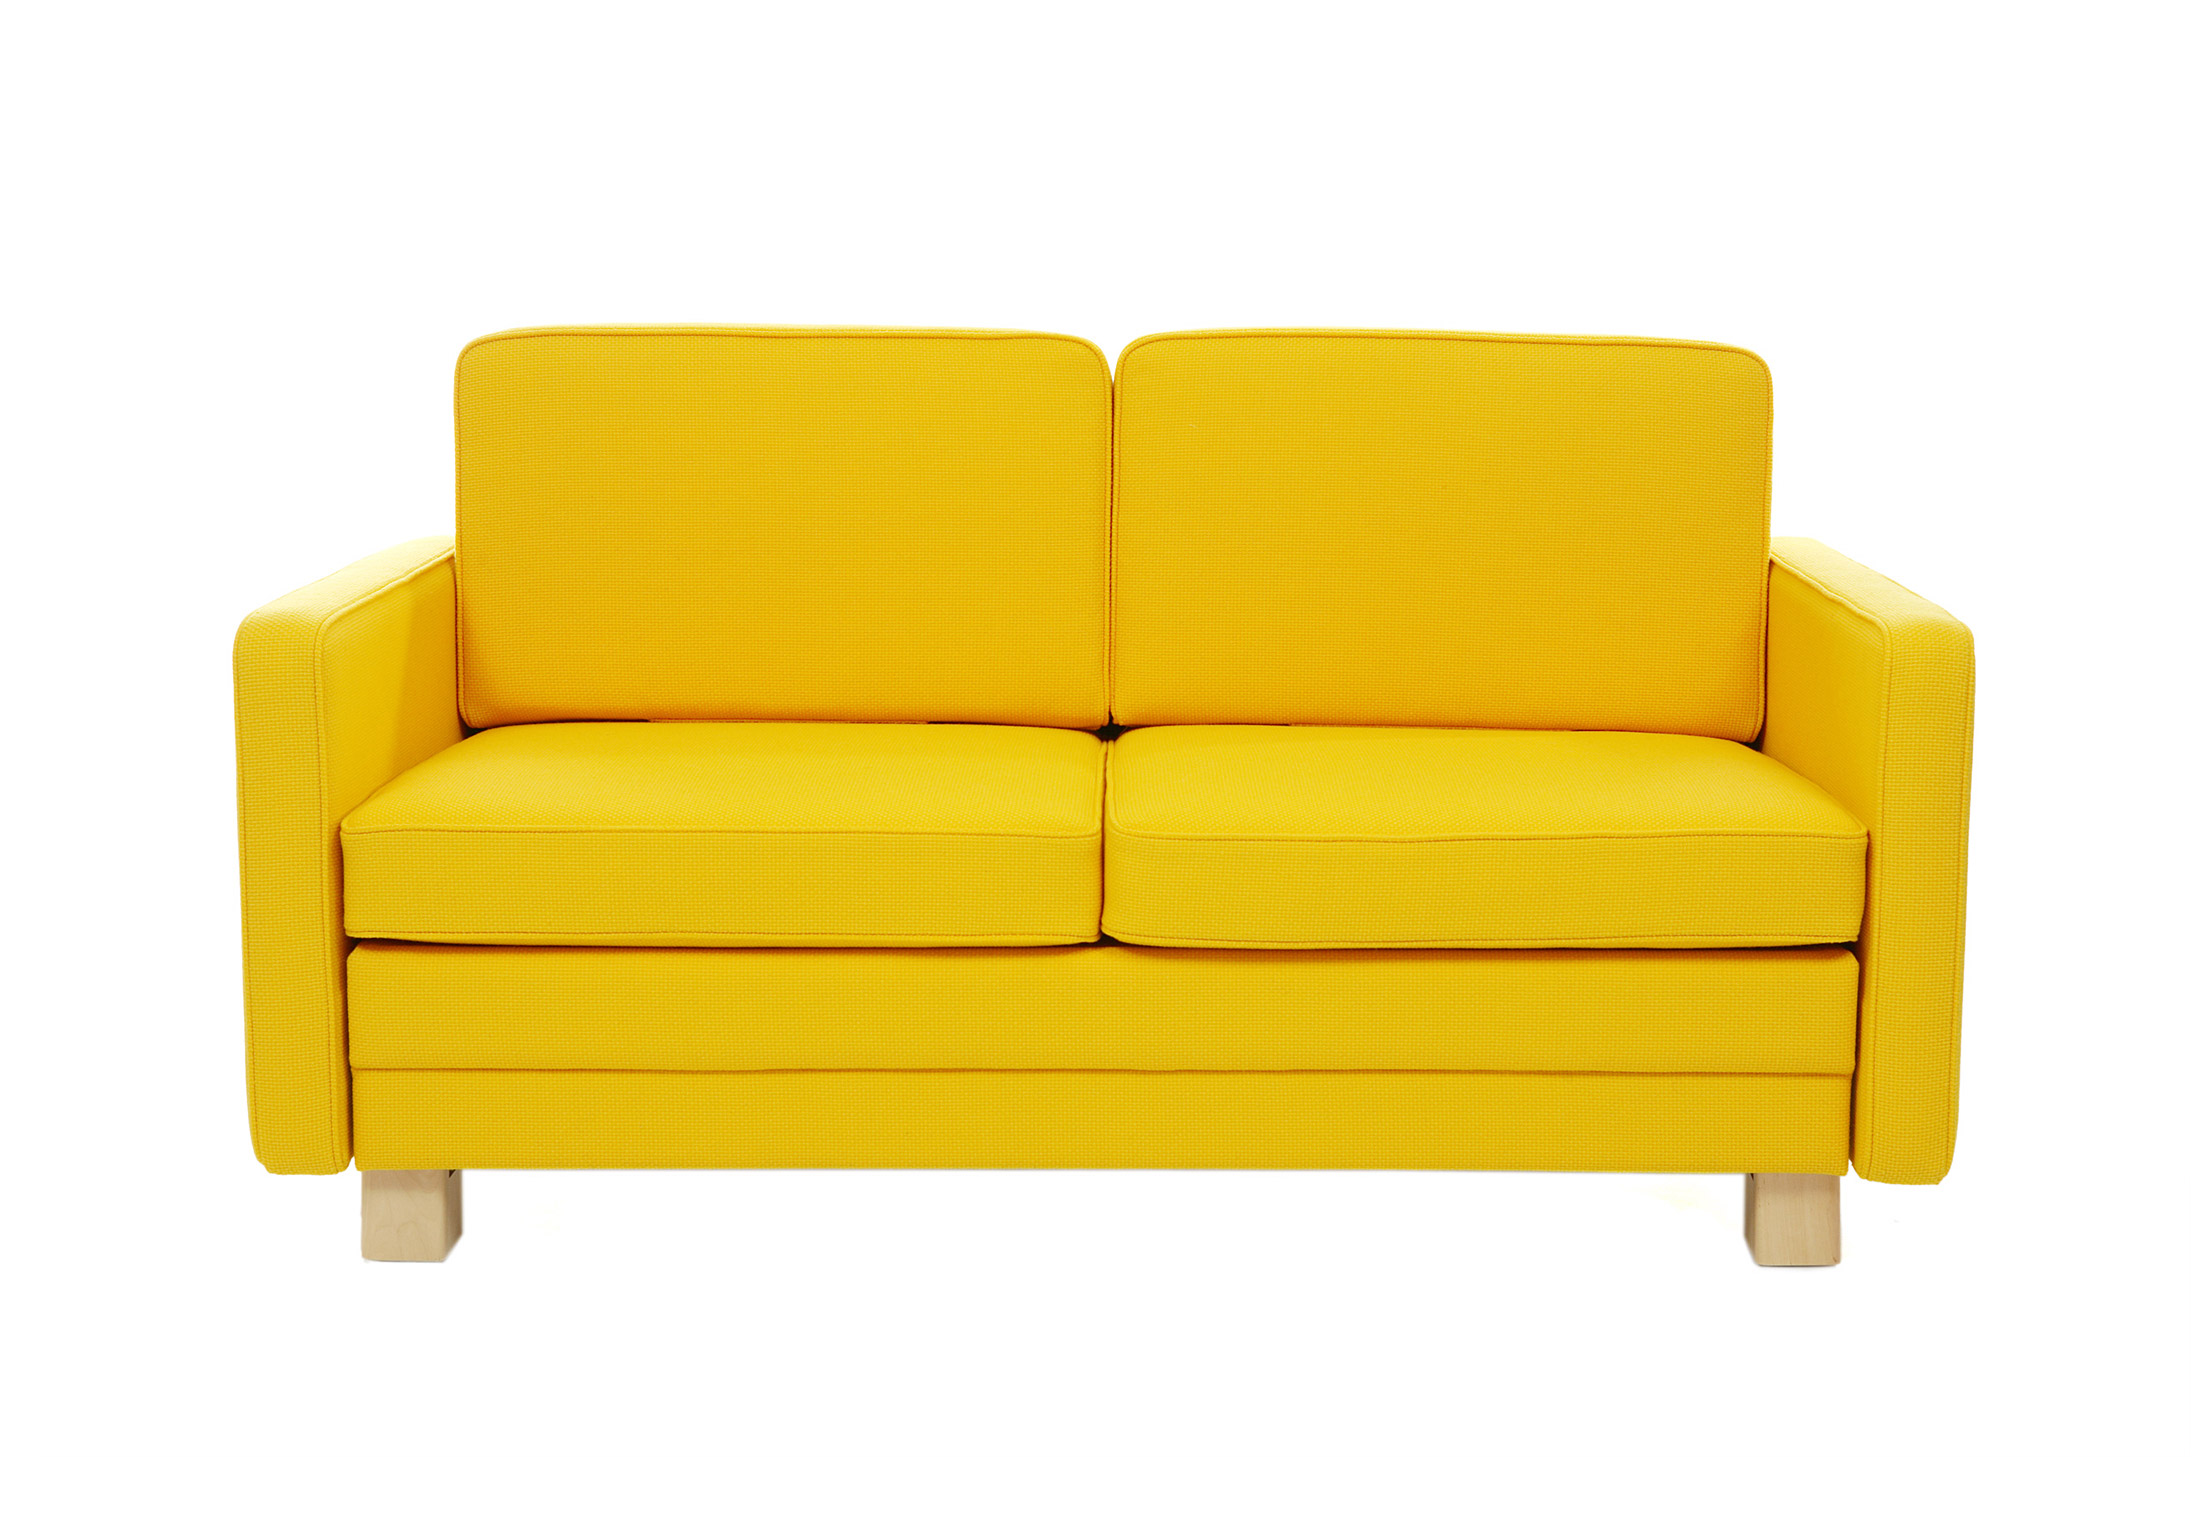 Fine Sofa Bed 549 By Artek Stylepark Onthecornerstone Fun Painted Chair Ideas Images Onthecornerstoneorg